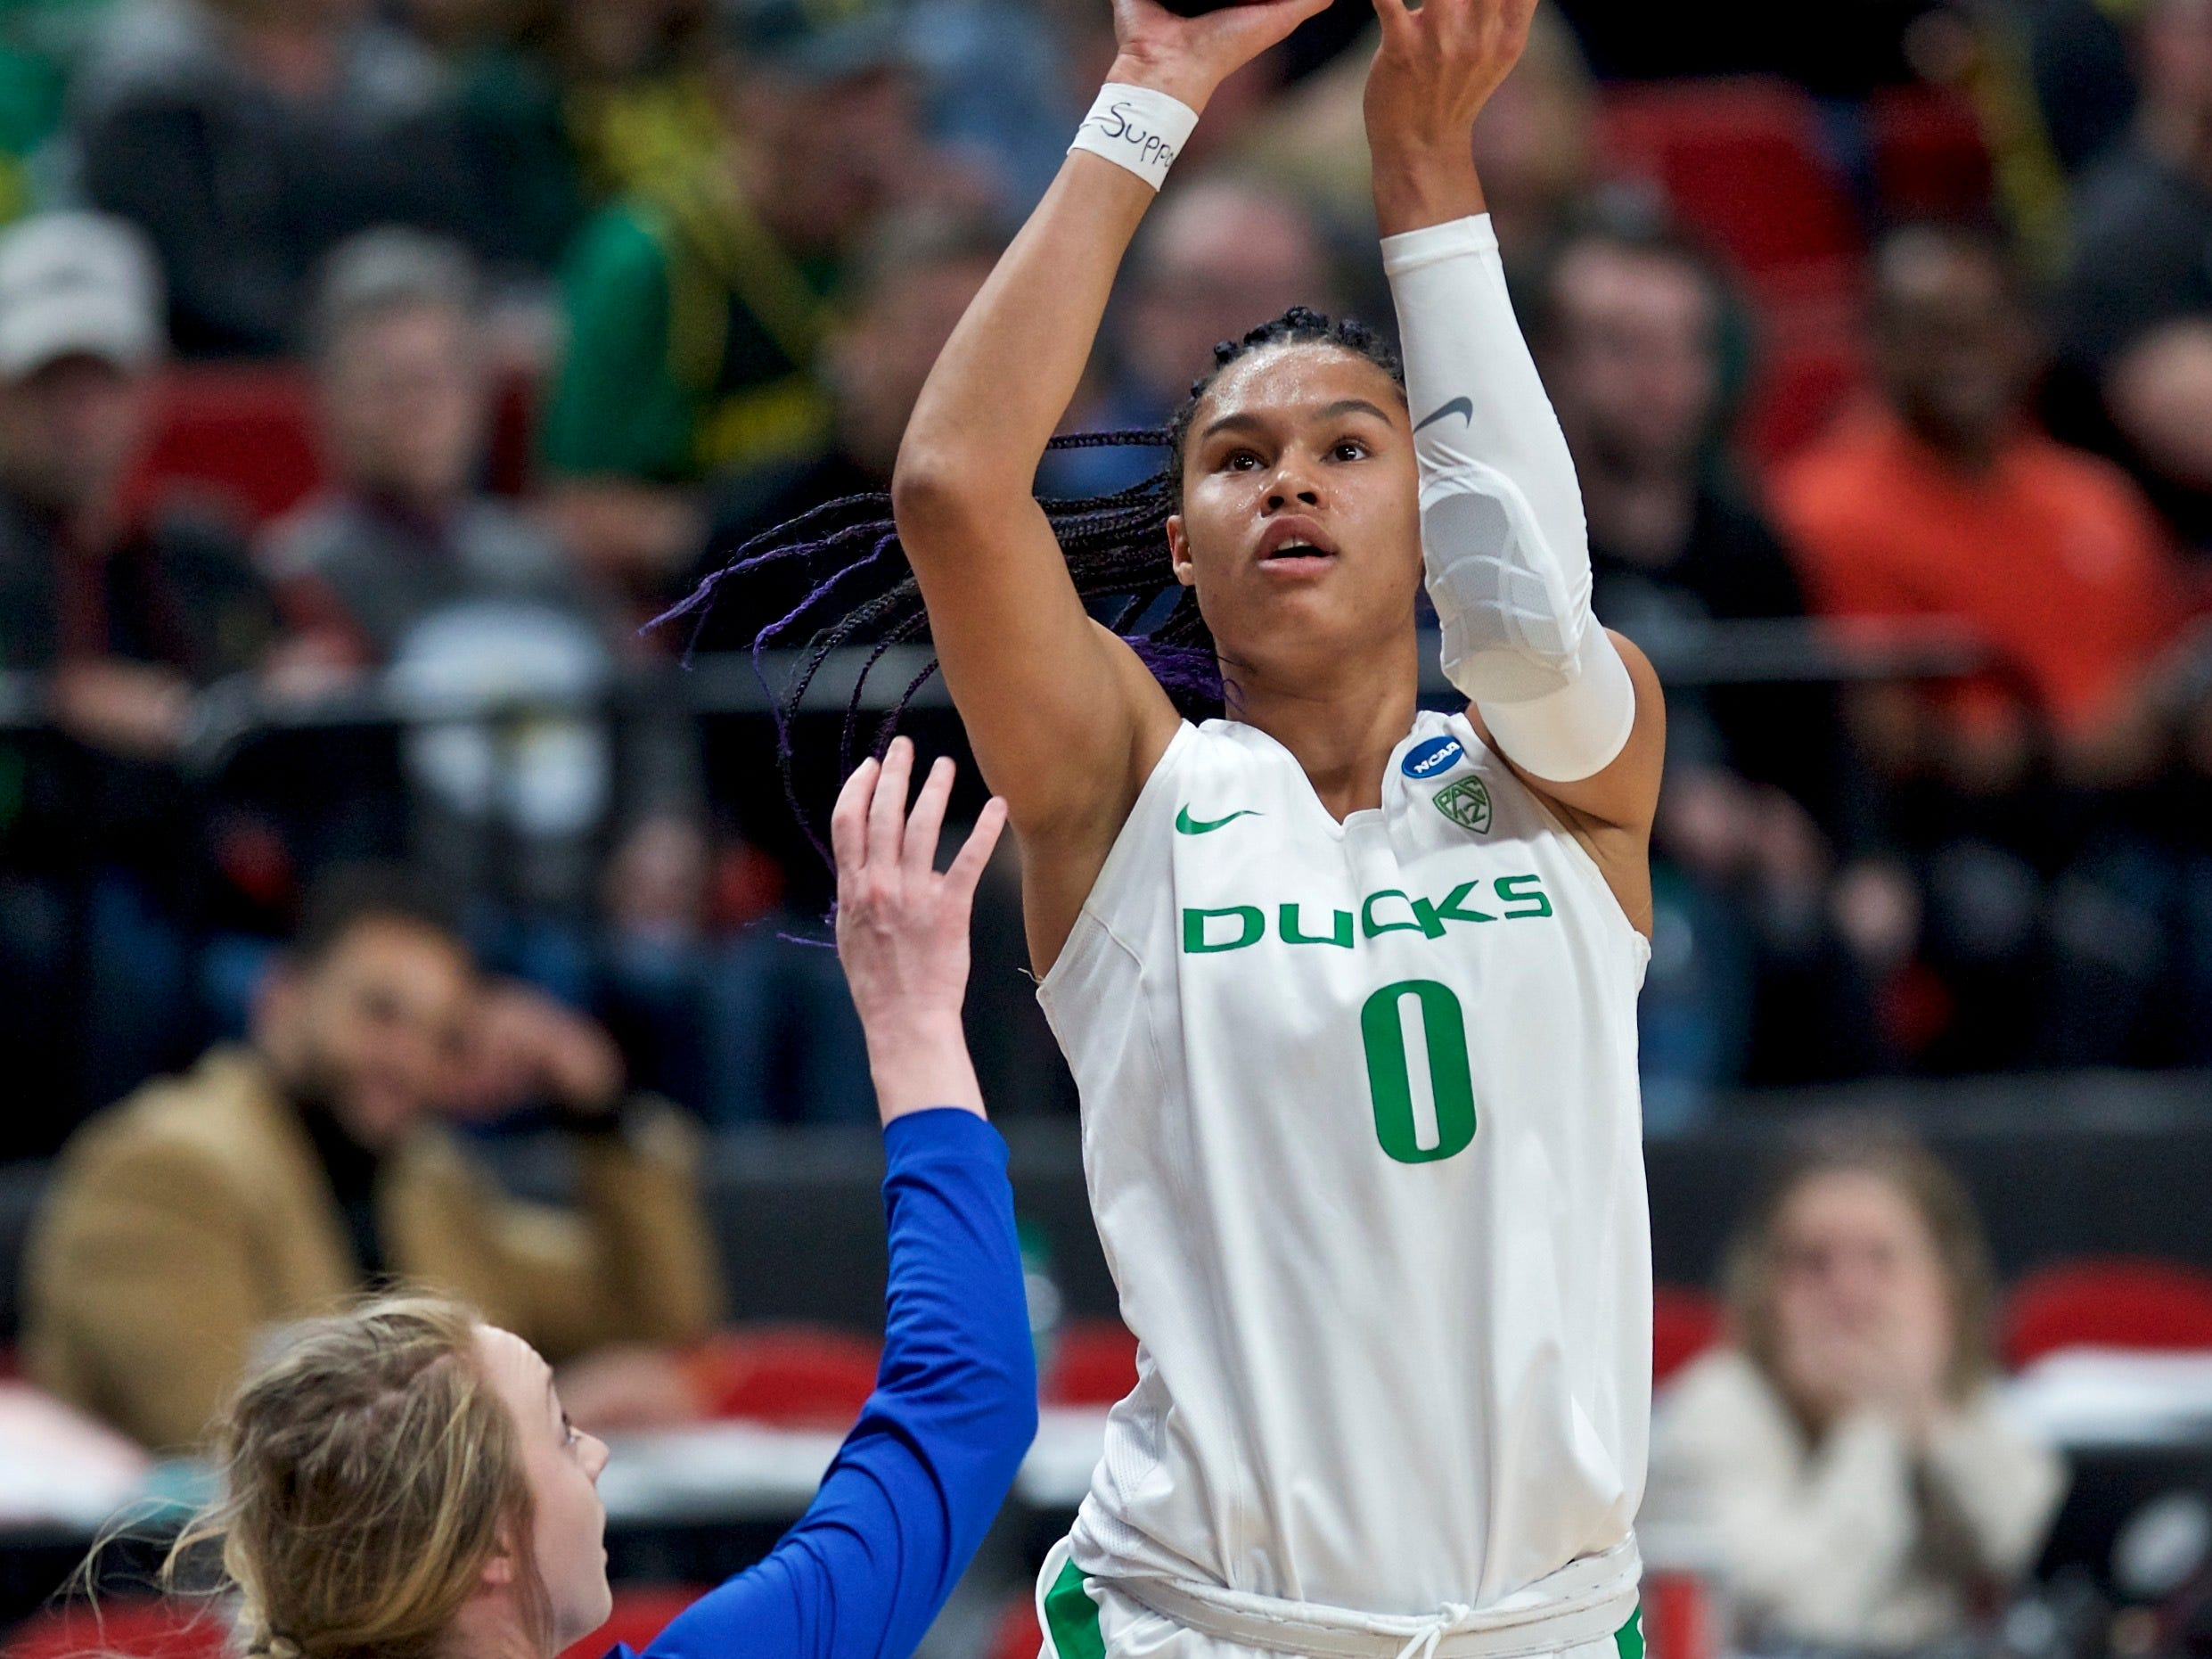 Oregon forward Satou Sabally, right, shoots over South Dakota State guard Madison Guebert during the first half of a regional semifinal in the NCAA women's college basketball tournament Friday, March 29, 2019, in Portland, Ore. (AP Photo/Craig Mitchelldyer)